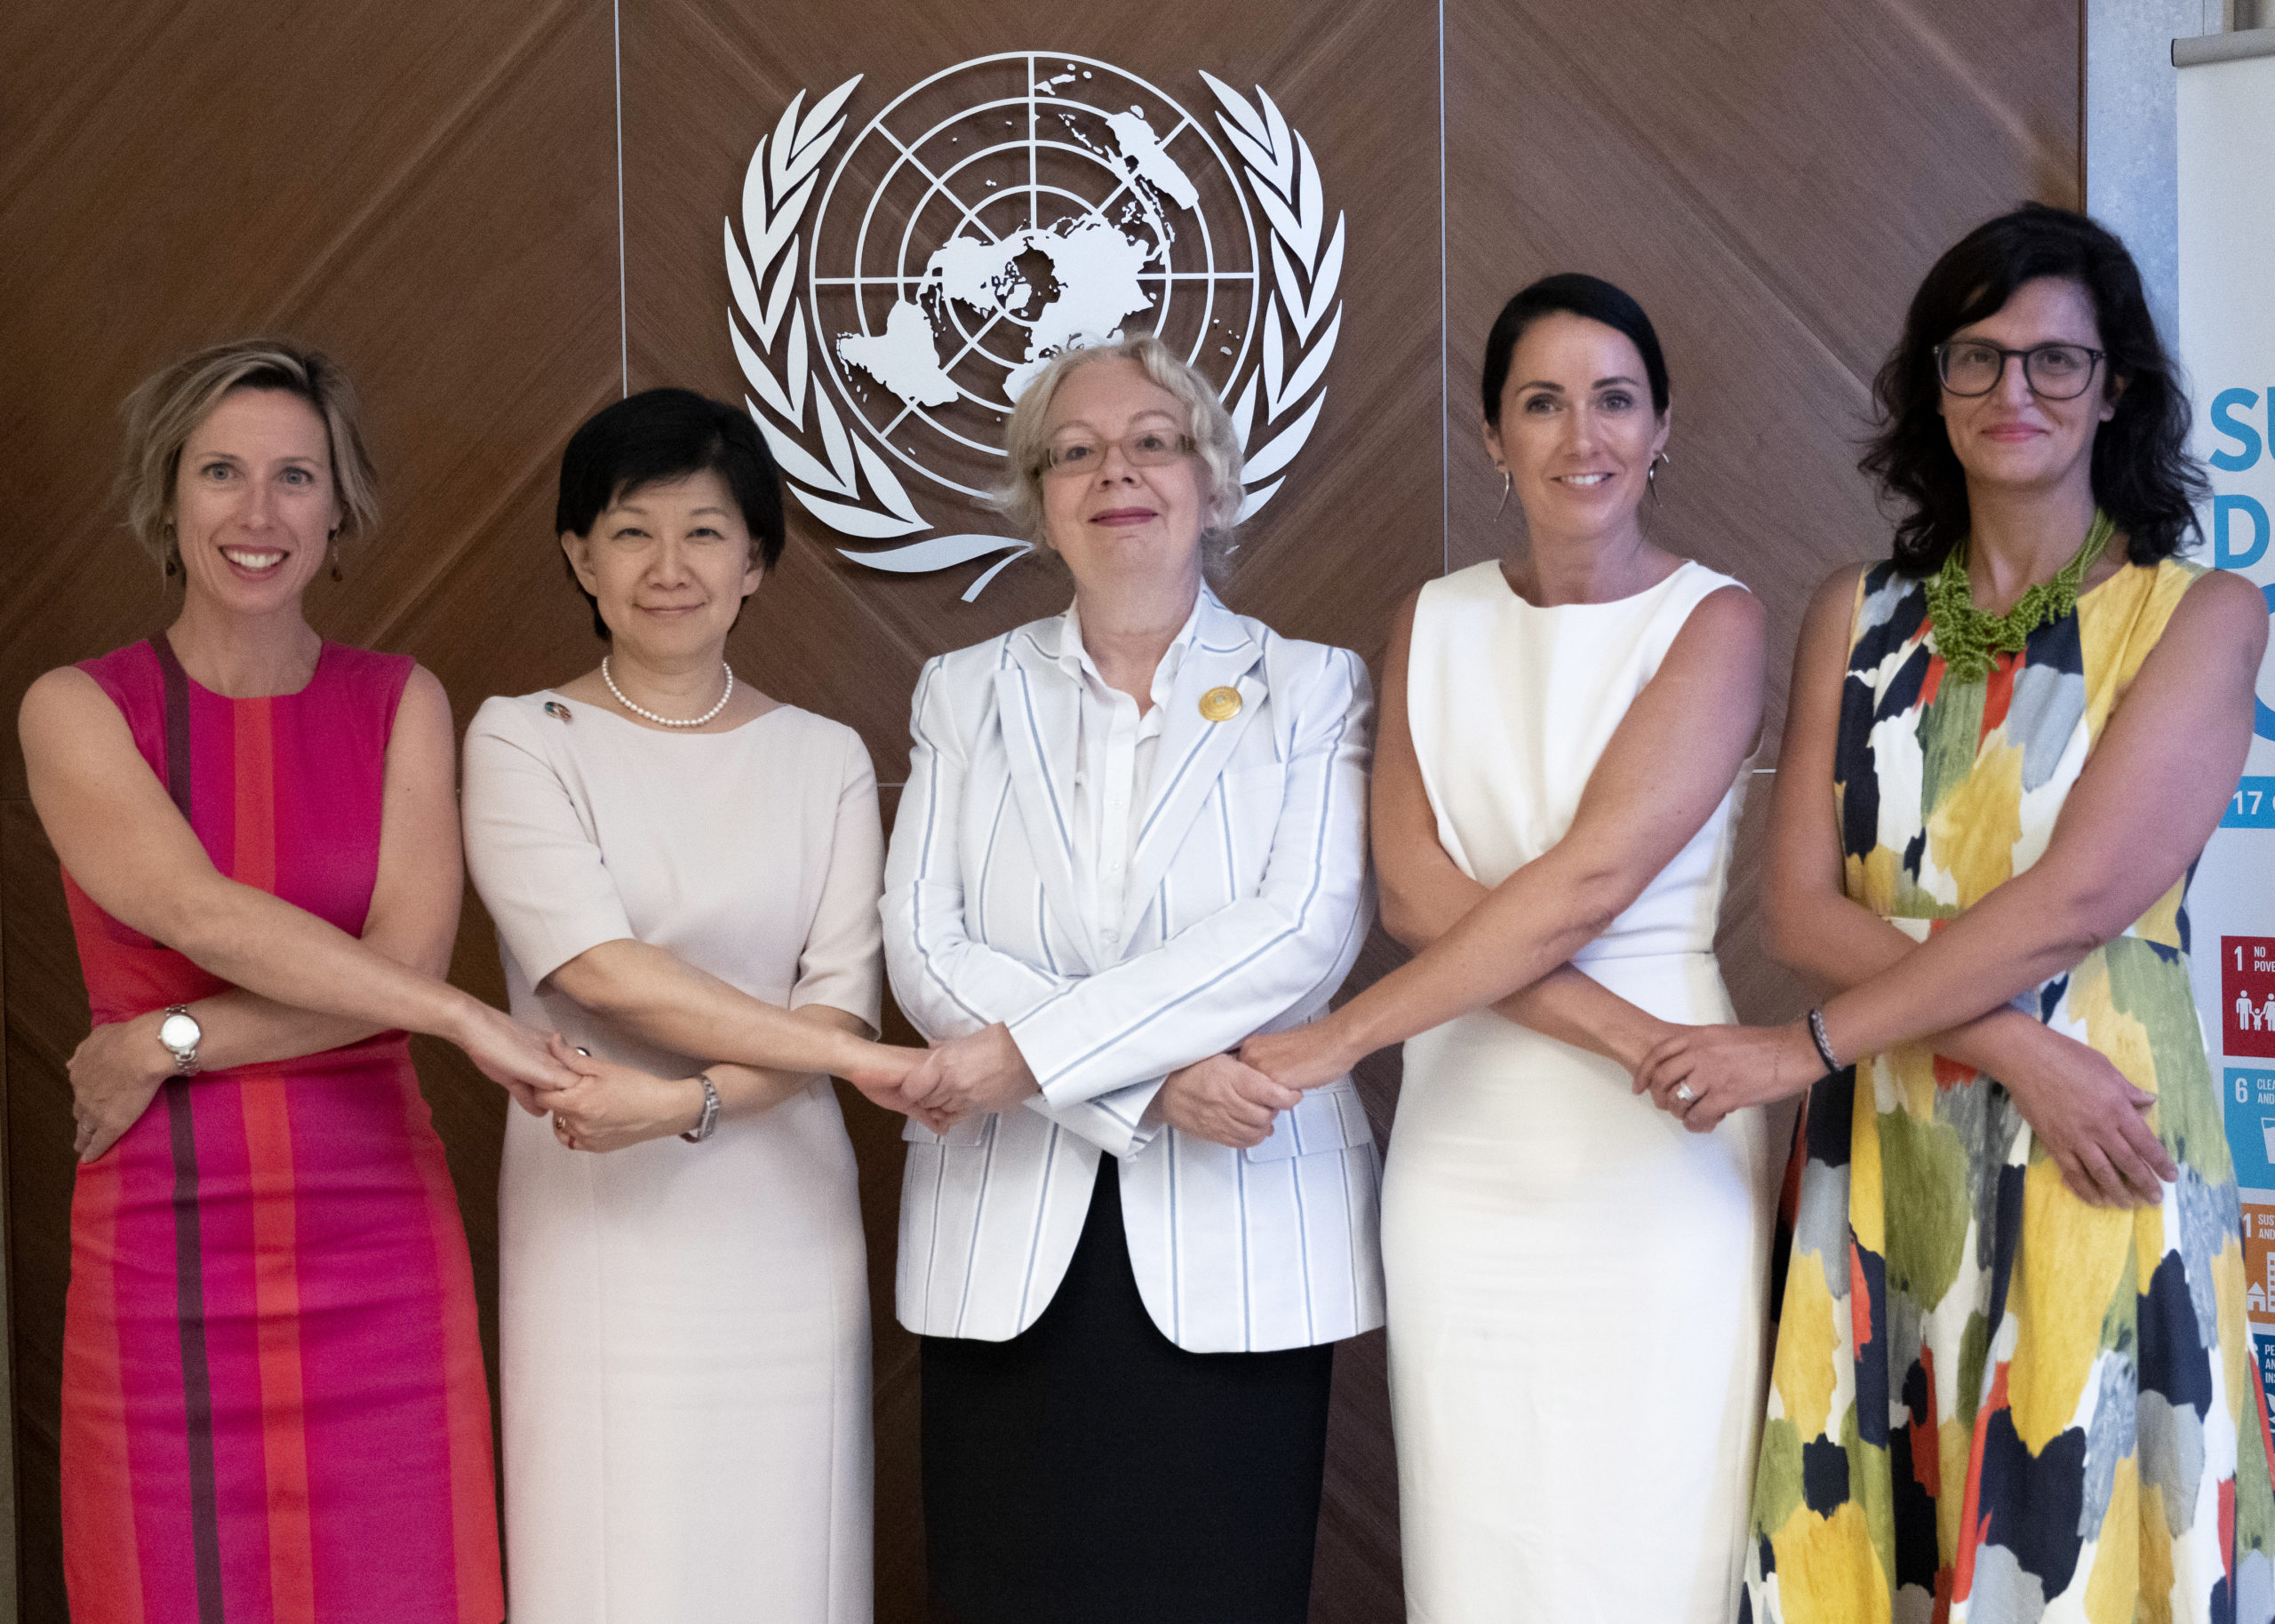 From left to right, Renata Dwan, Director of the United Nations Institute for Disarmament Research (UNIDIR), Izumi Nakamitsu, Under Secretary-General, High Representative for Disarmament Affairs, Tatiana Valovaya, Director-General of the United Nations Office at Geneva, Anja Therese Kaspersen, Director, Office for Disarmament Affairs and Radha Day, Senior Political Affairs Officer, Office for Disarmament Affairs, Secretary of the Conference on Disarmament. 26 August 2019. UN Photo/ Jean Marc Ferré